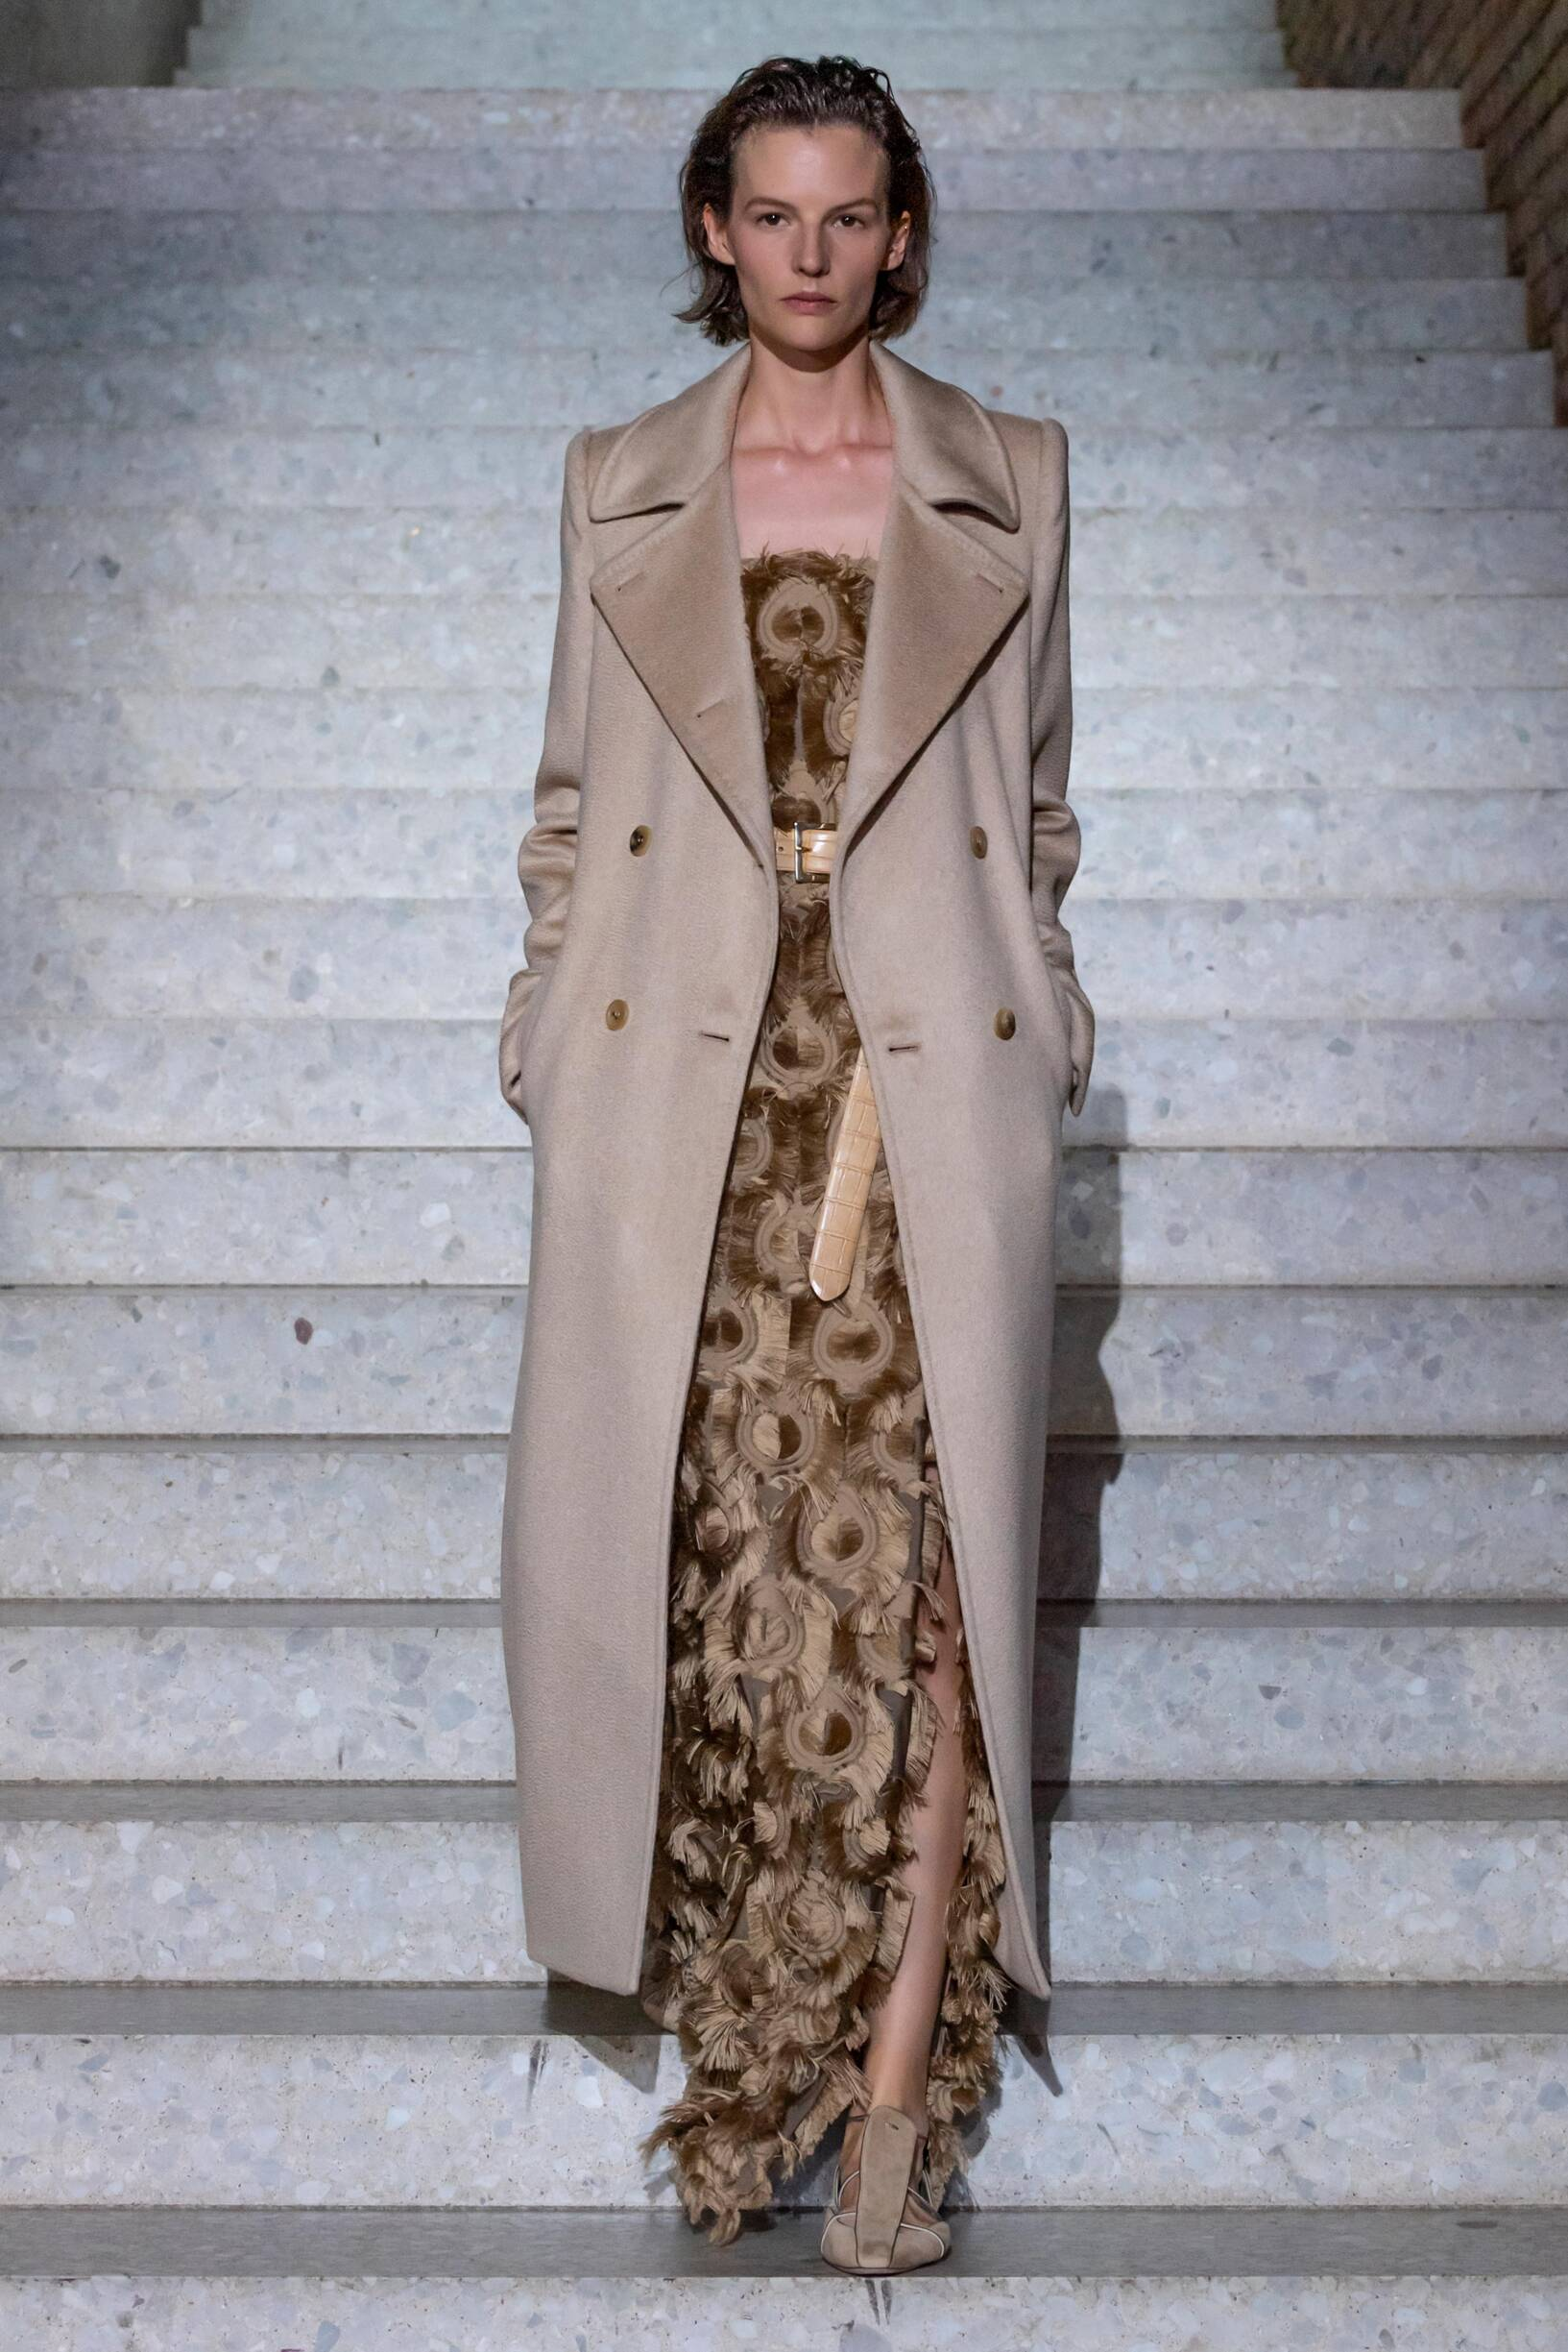 Max Mara Resort 2020 Collection Look 8 Berlin